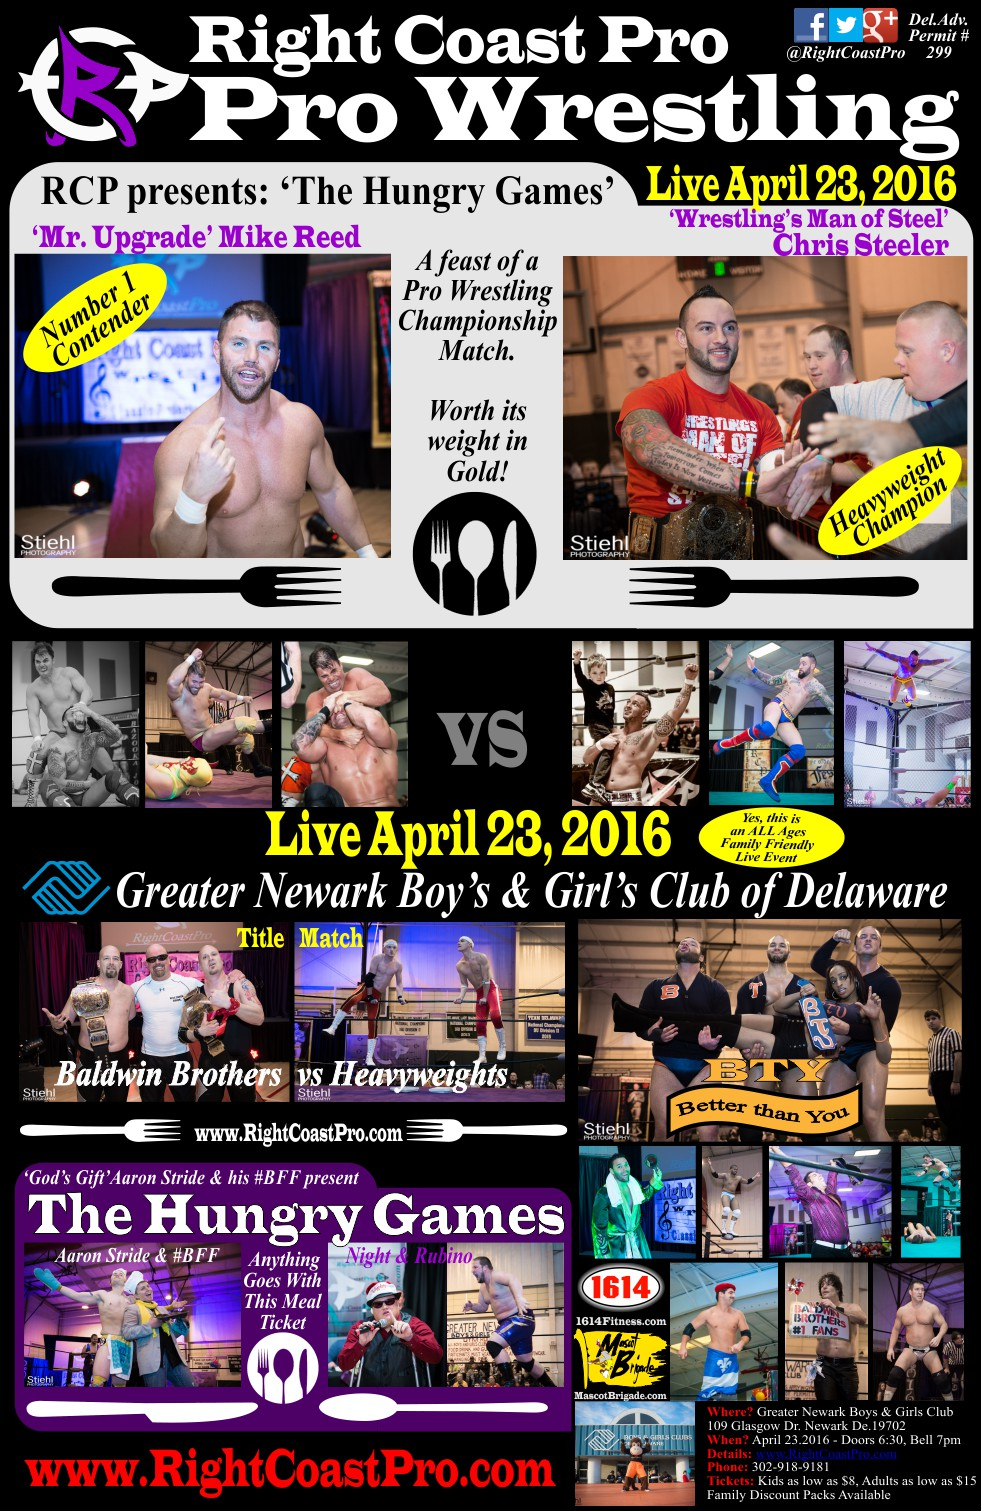 HungryGames Poster RCP29 RightCoastPro Wrestling Delaware